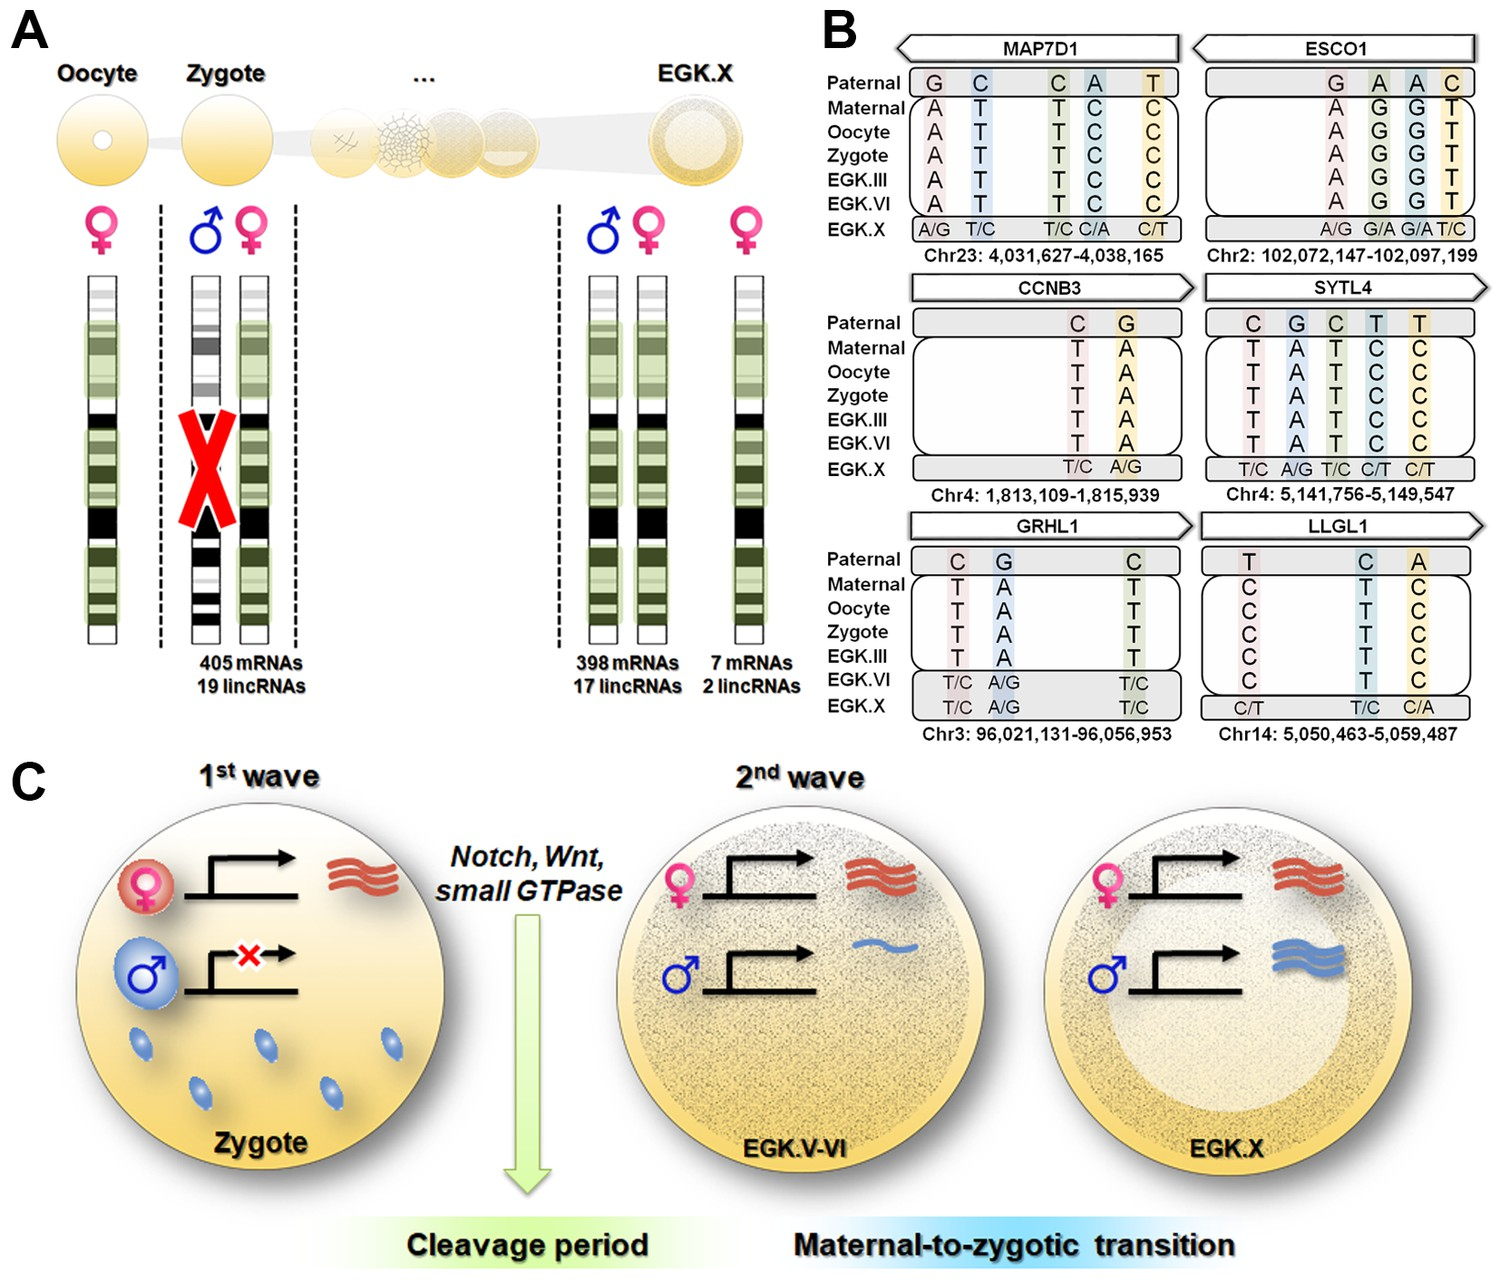 Zygotic gene activation in the chicken occurs in two waves